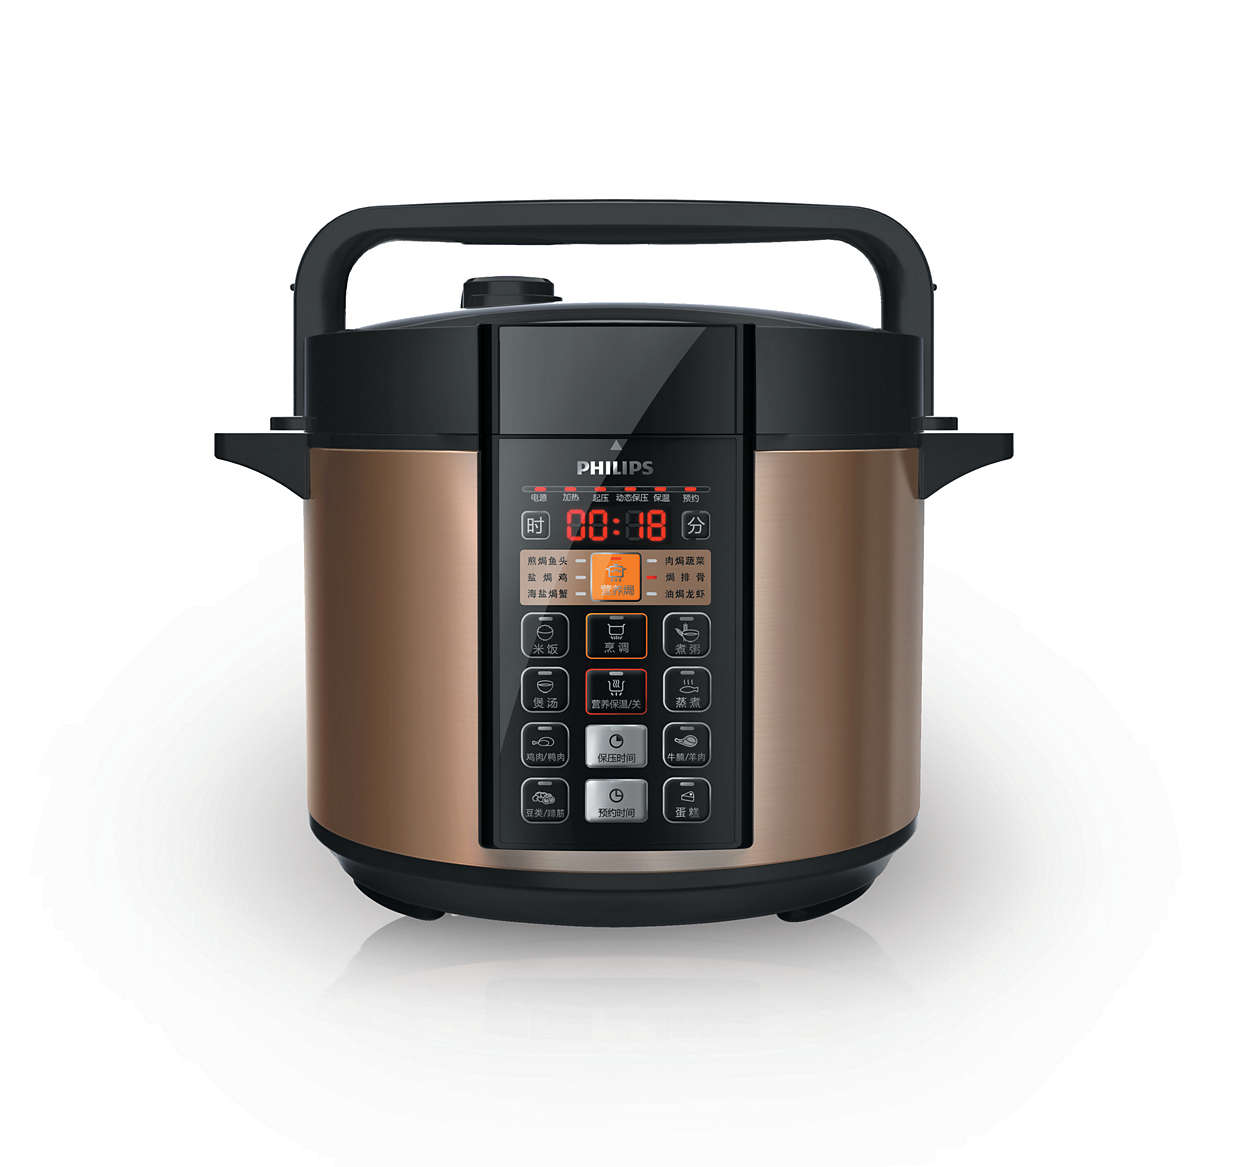 Viva Collection Hd2136 05 Philips Pressure Cooker